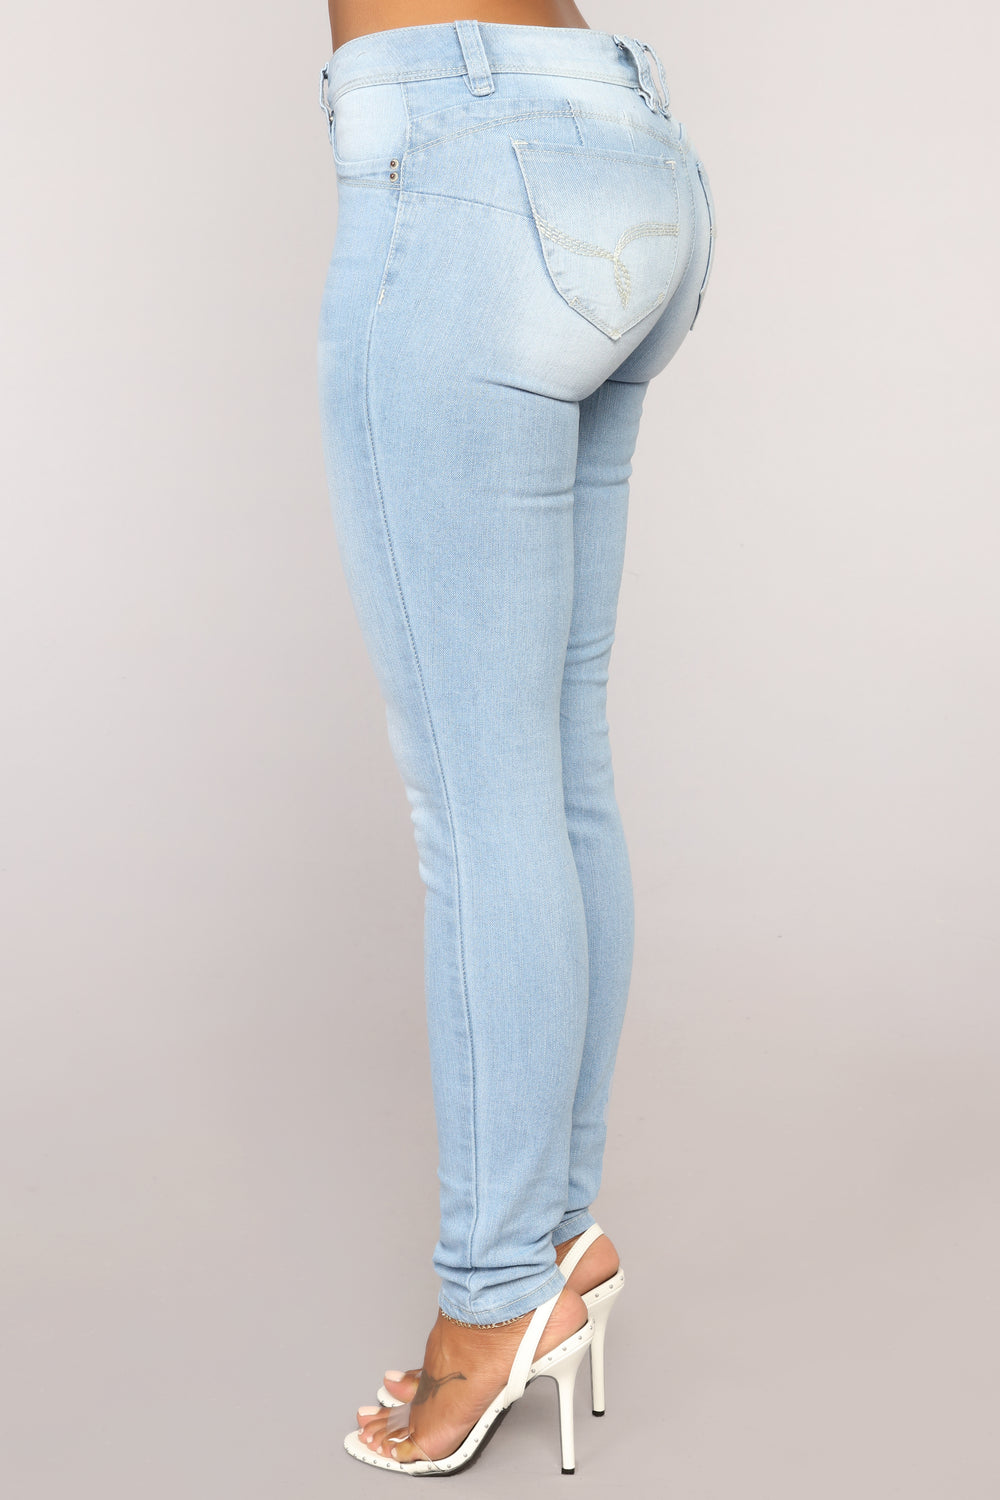 Light Up Your Life Booty Lifting Jeans - Light Blue Wash